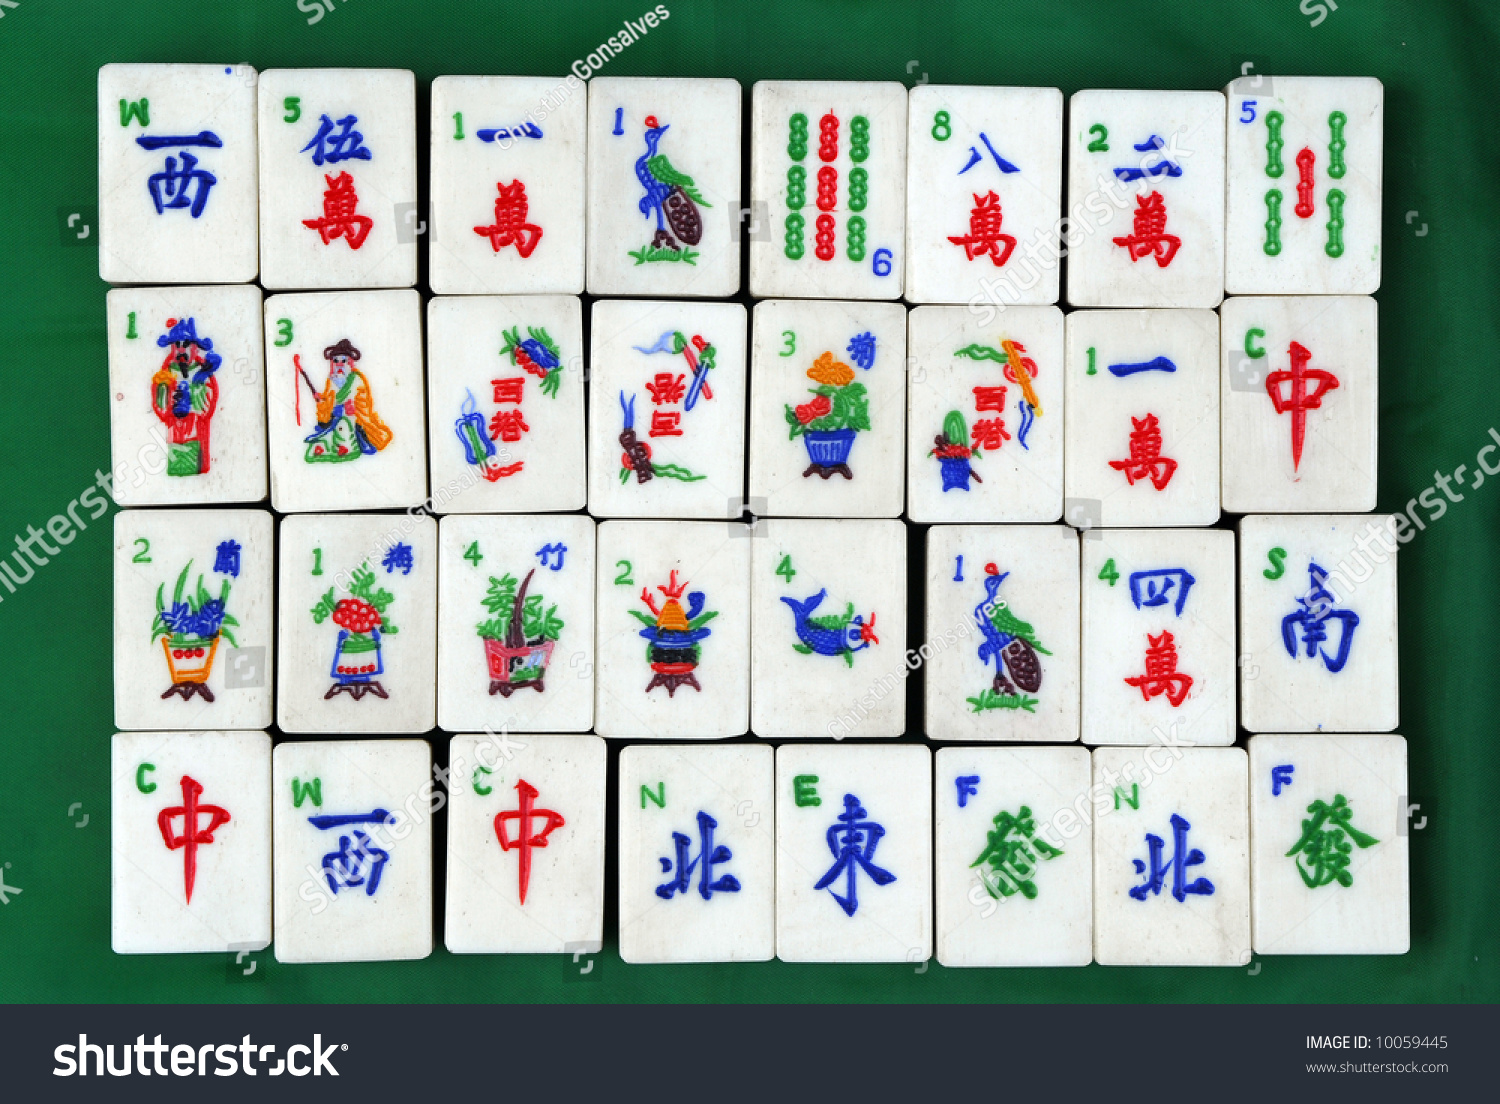 Mah jong tiles floor and decorations database floor and chinese mahjong tiles stock photo royalty free 10059445 shutterstock chinese mahjong tiles shiifo ppazfo